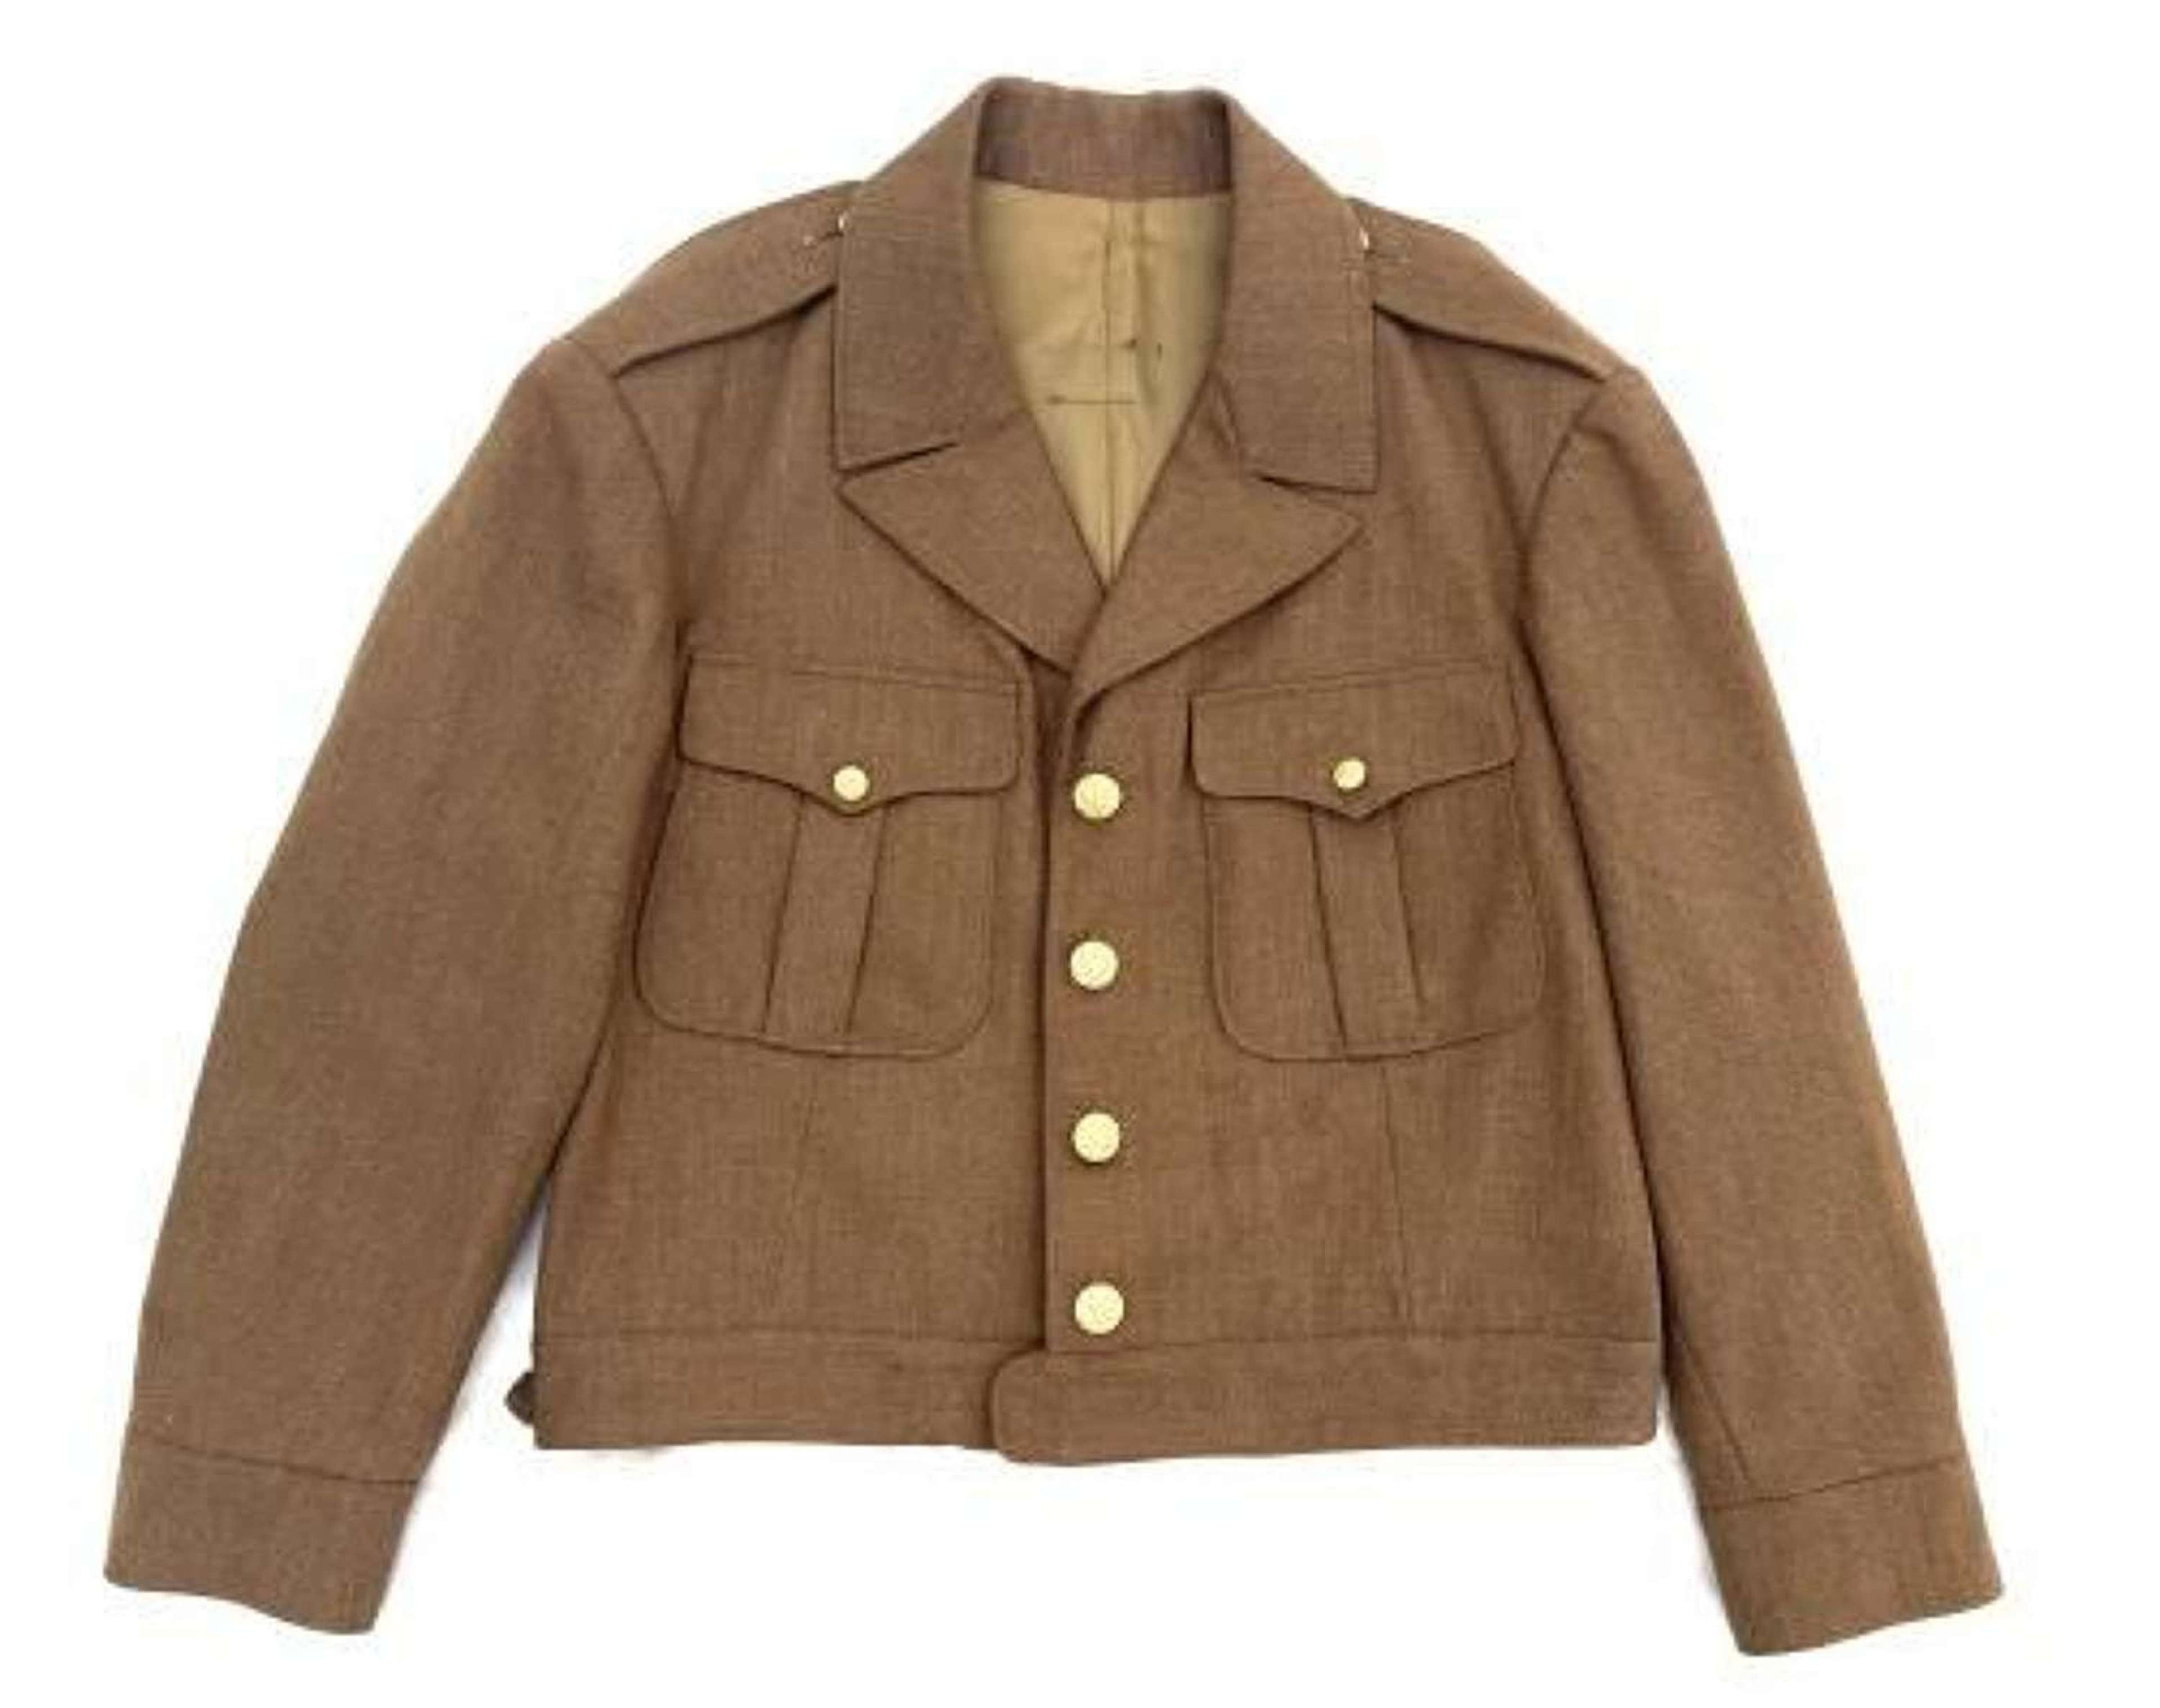 Original WW2 US Army Officers Private Purchase Ike Jacket